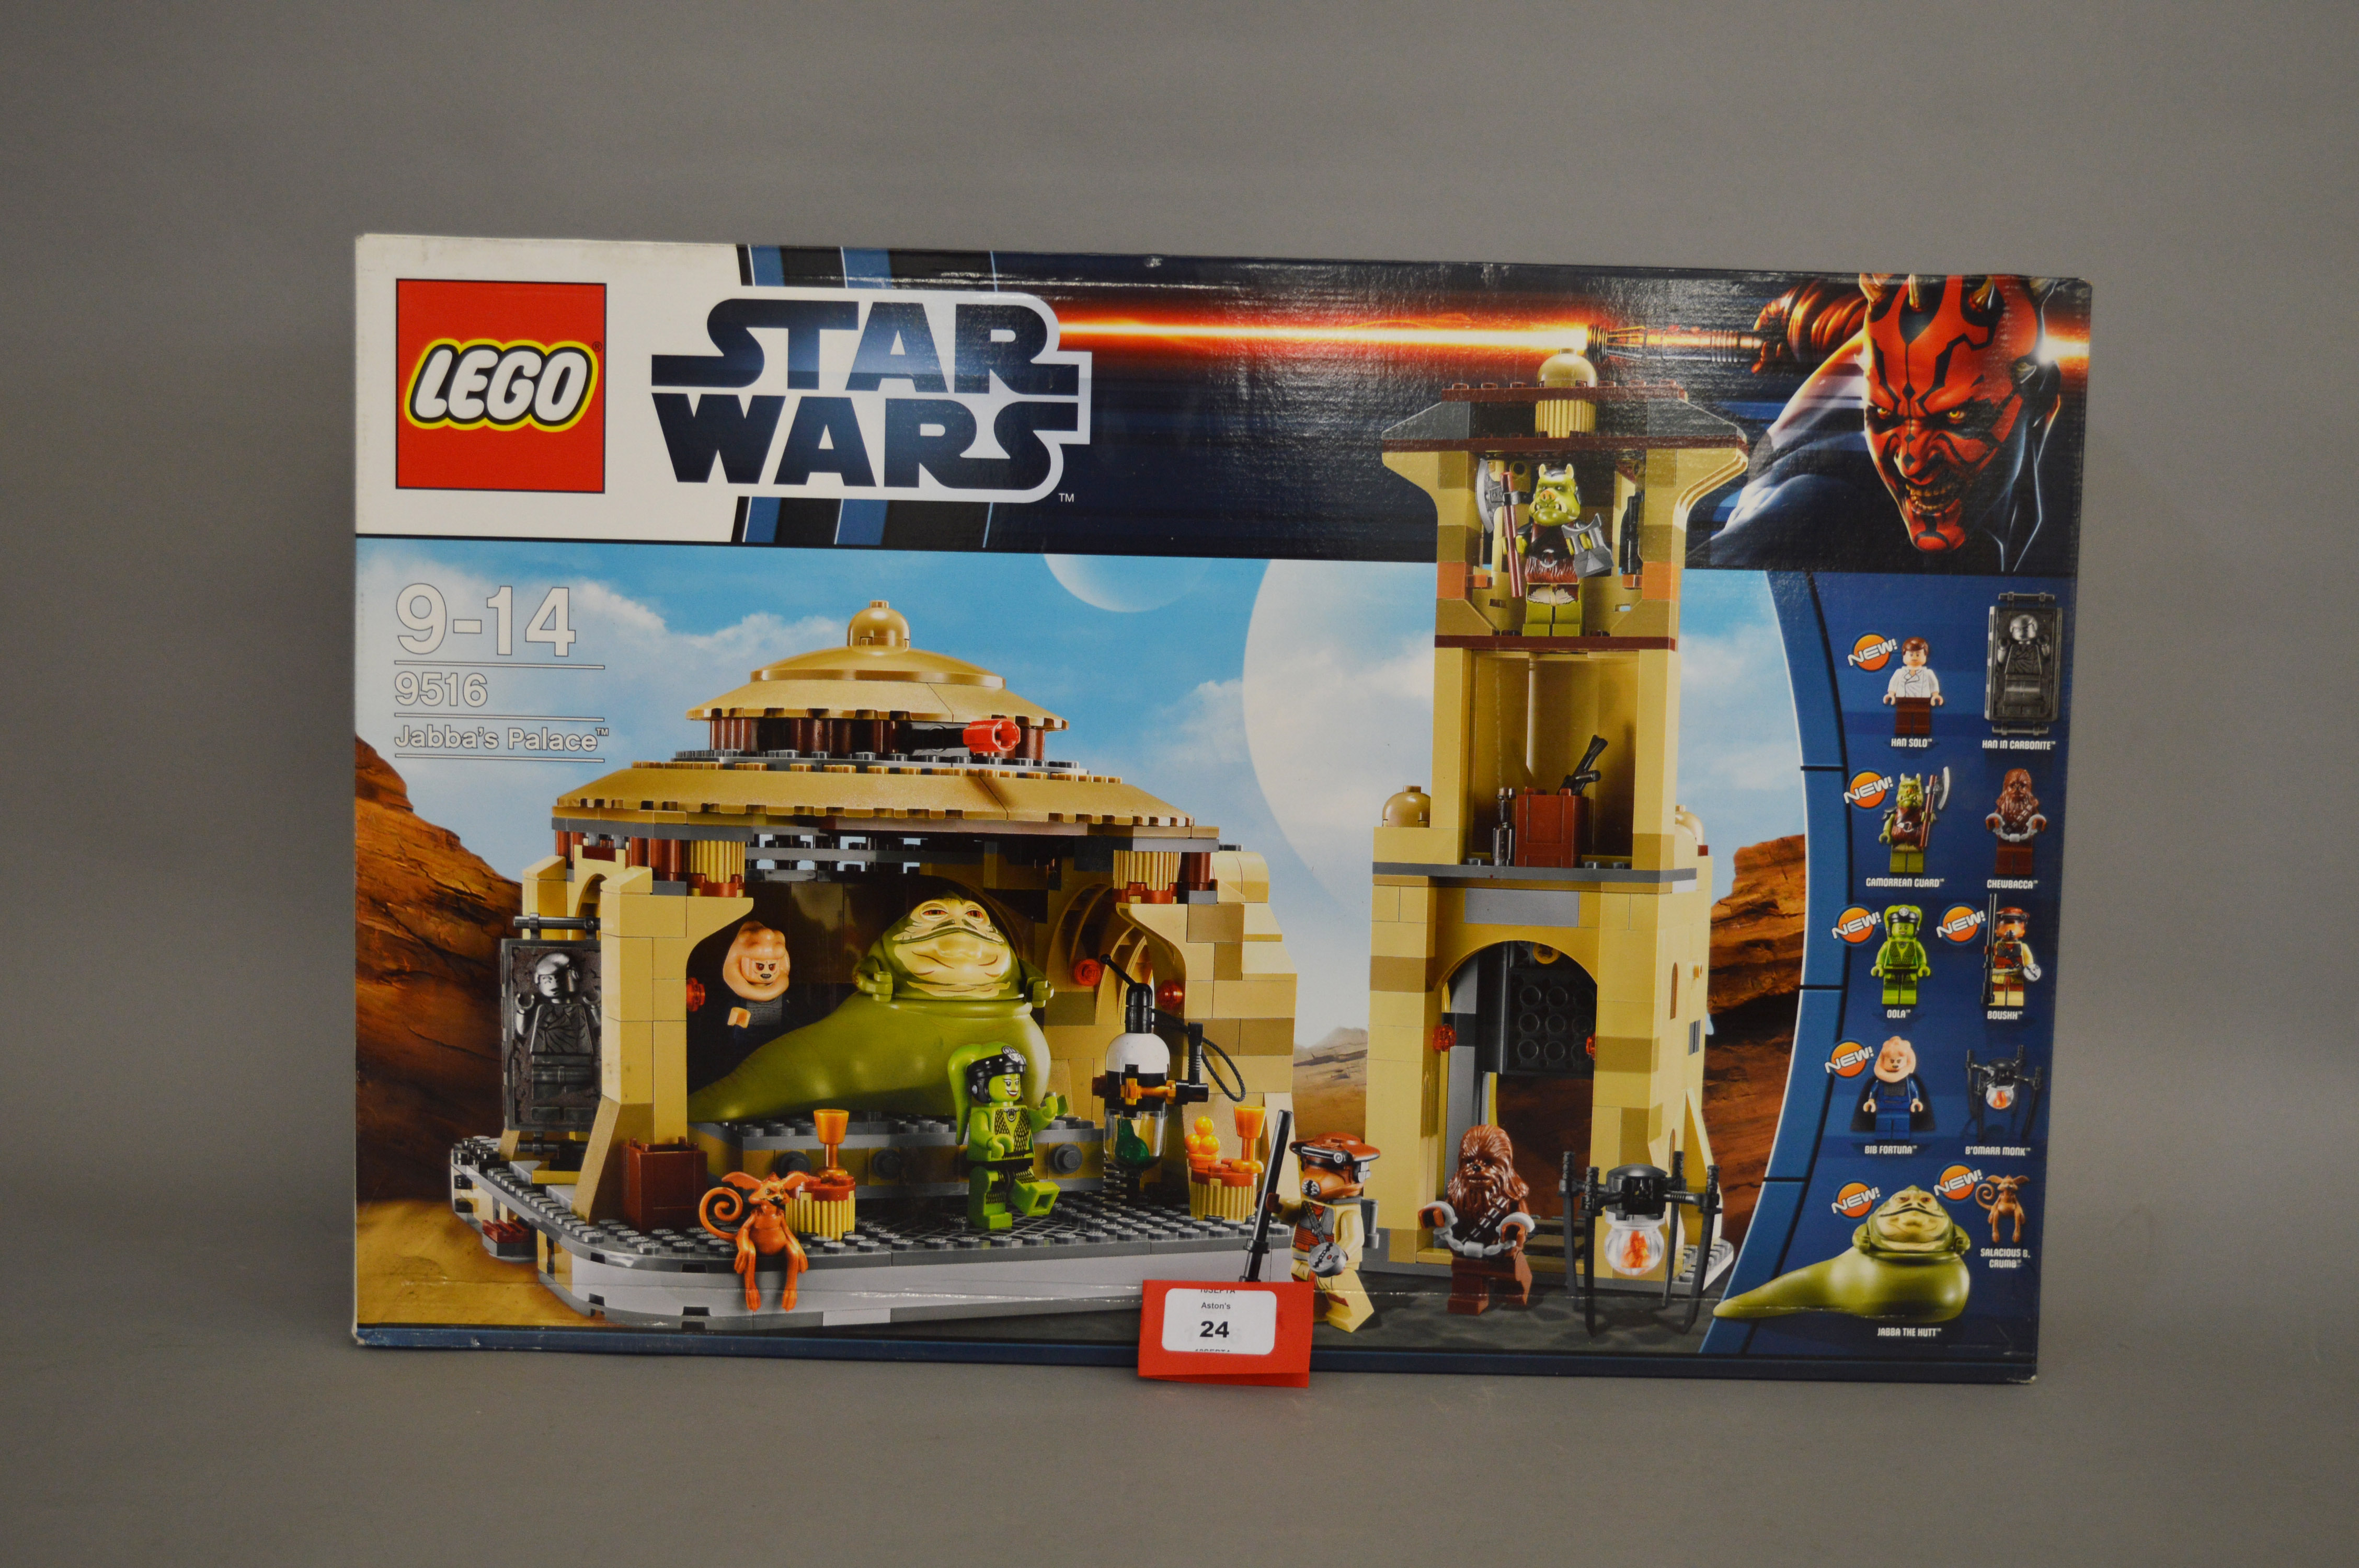 Lot 24 - Lego Star Wars 9516 'Jabba's Palace', sealed in generally G+/VG box with some creasing.